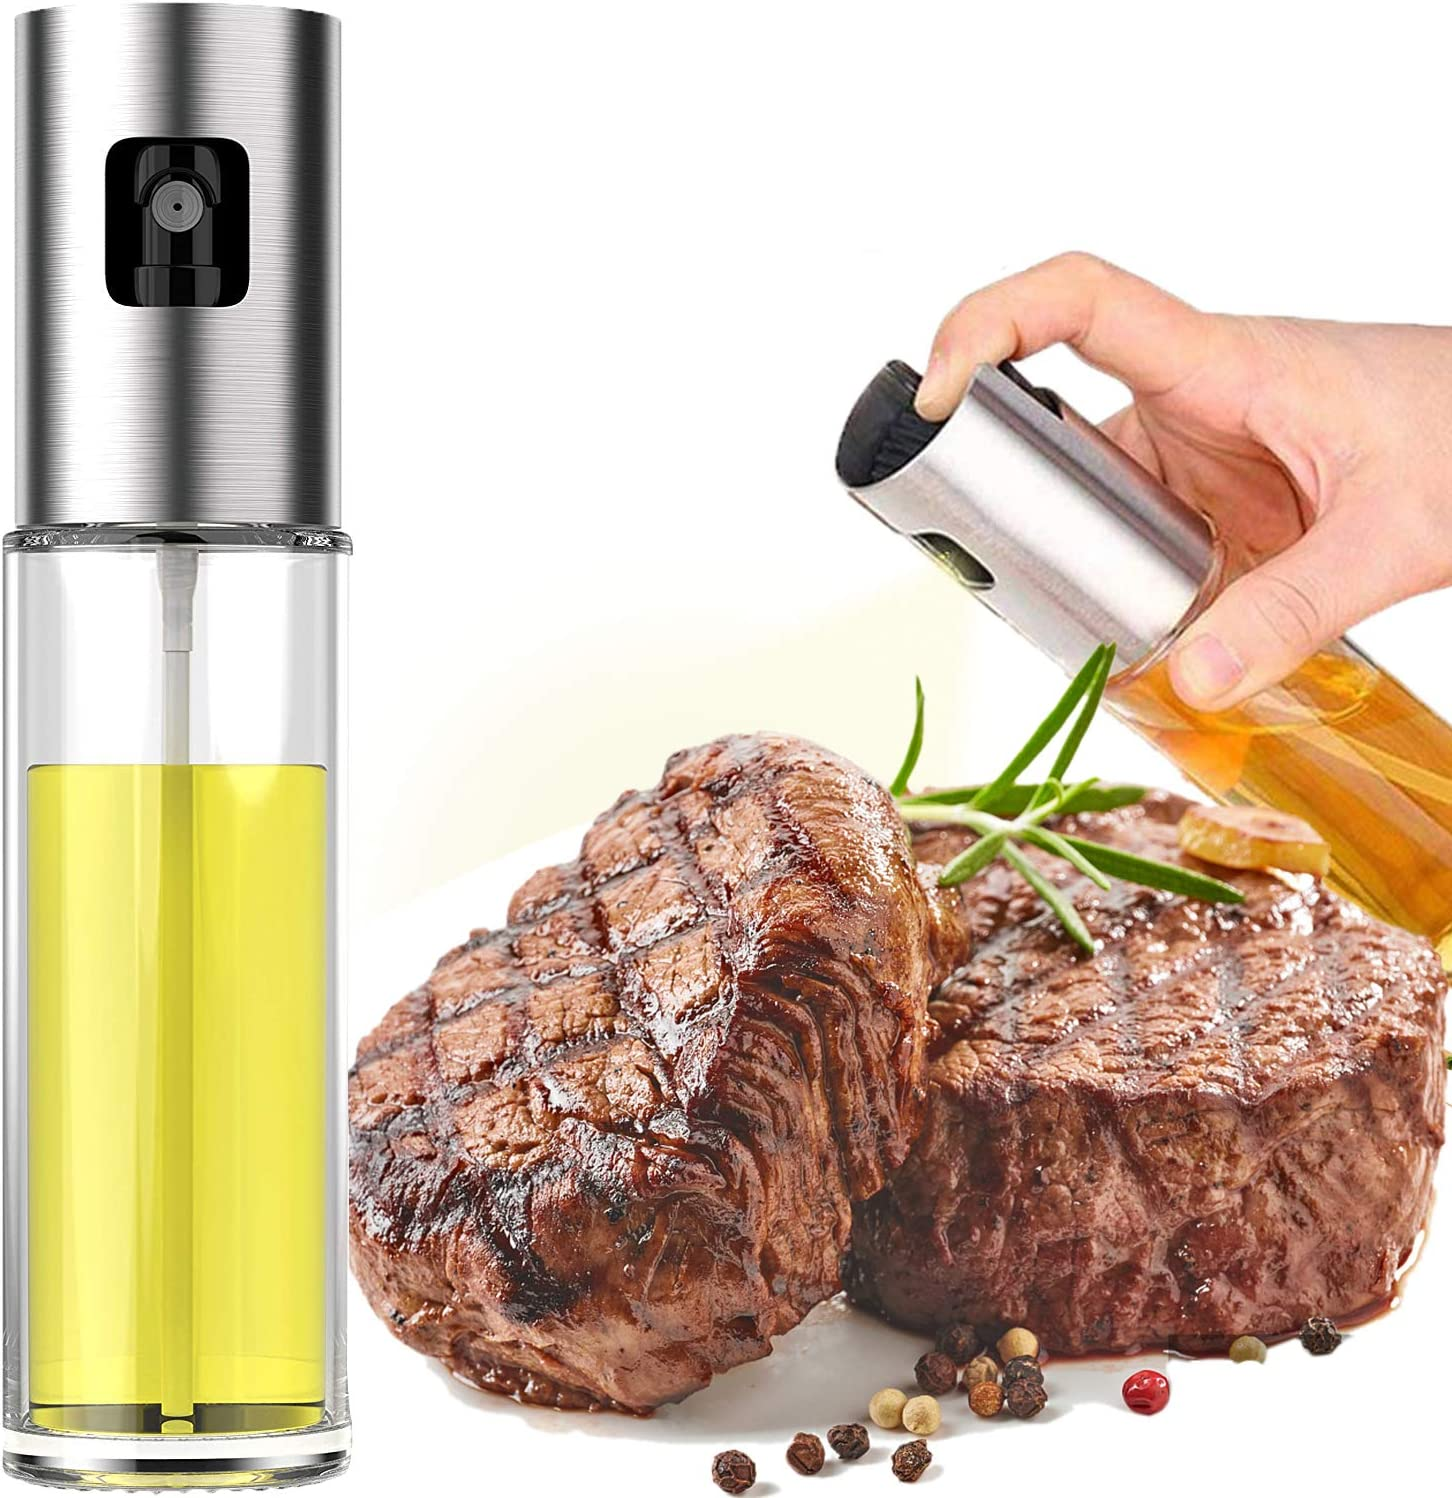 Olive Oil Sprayer for Cooking, Oil Spray Bottle for Oil Versatile Glass Spray Olive Oil Bottle for Cooking,Vinegar Bottle Glass,for Cooking,Baking,Roasting,Grilling